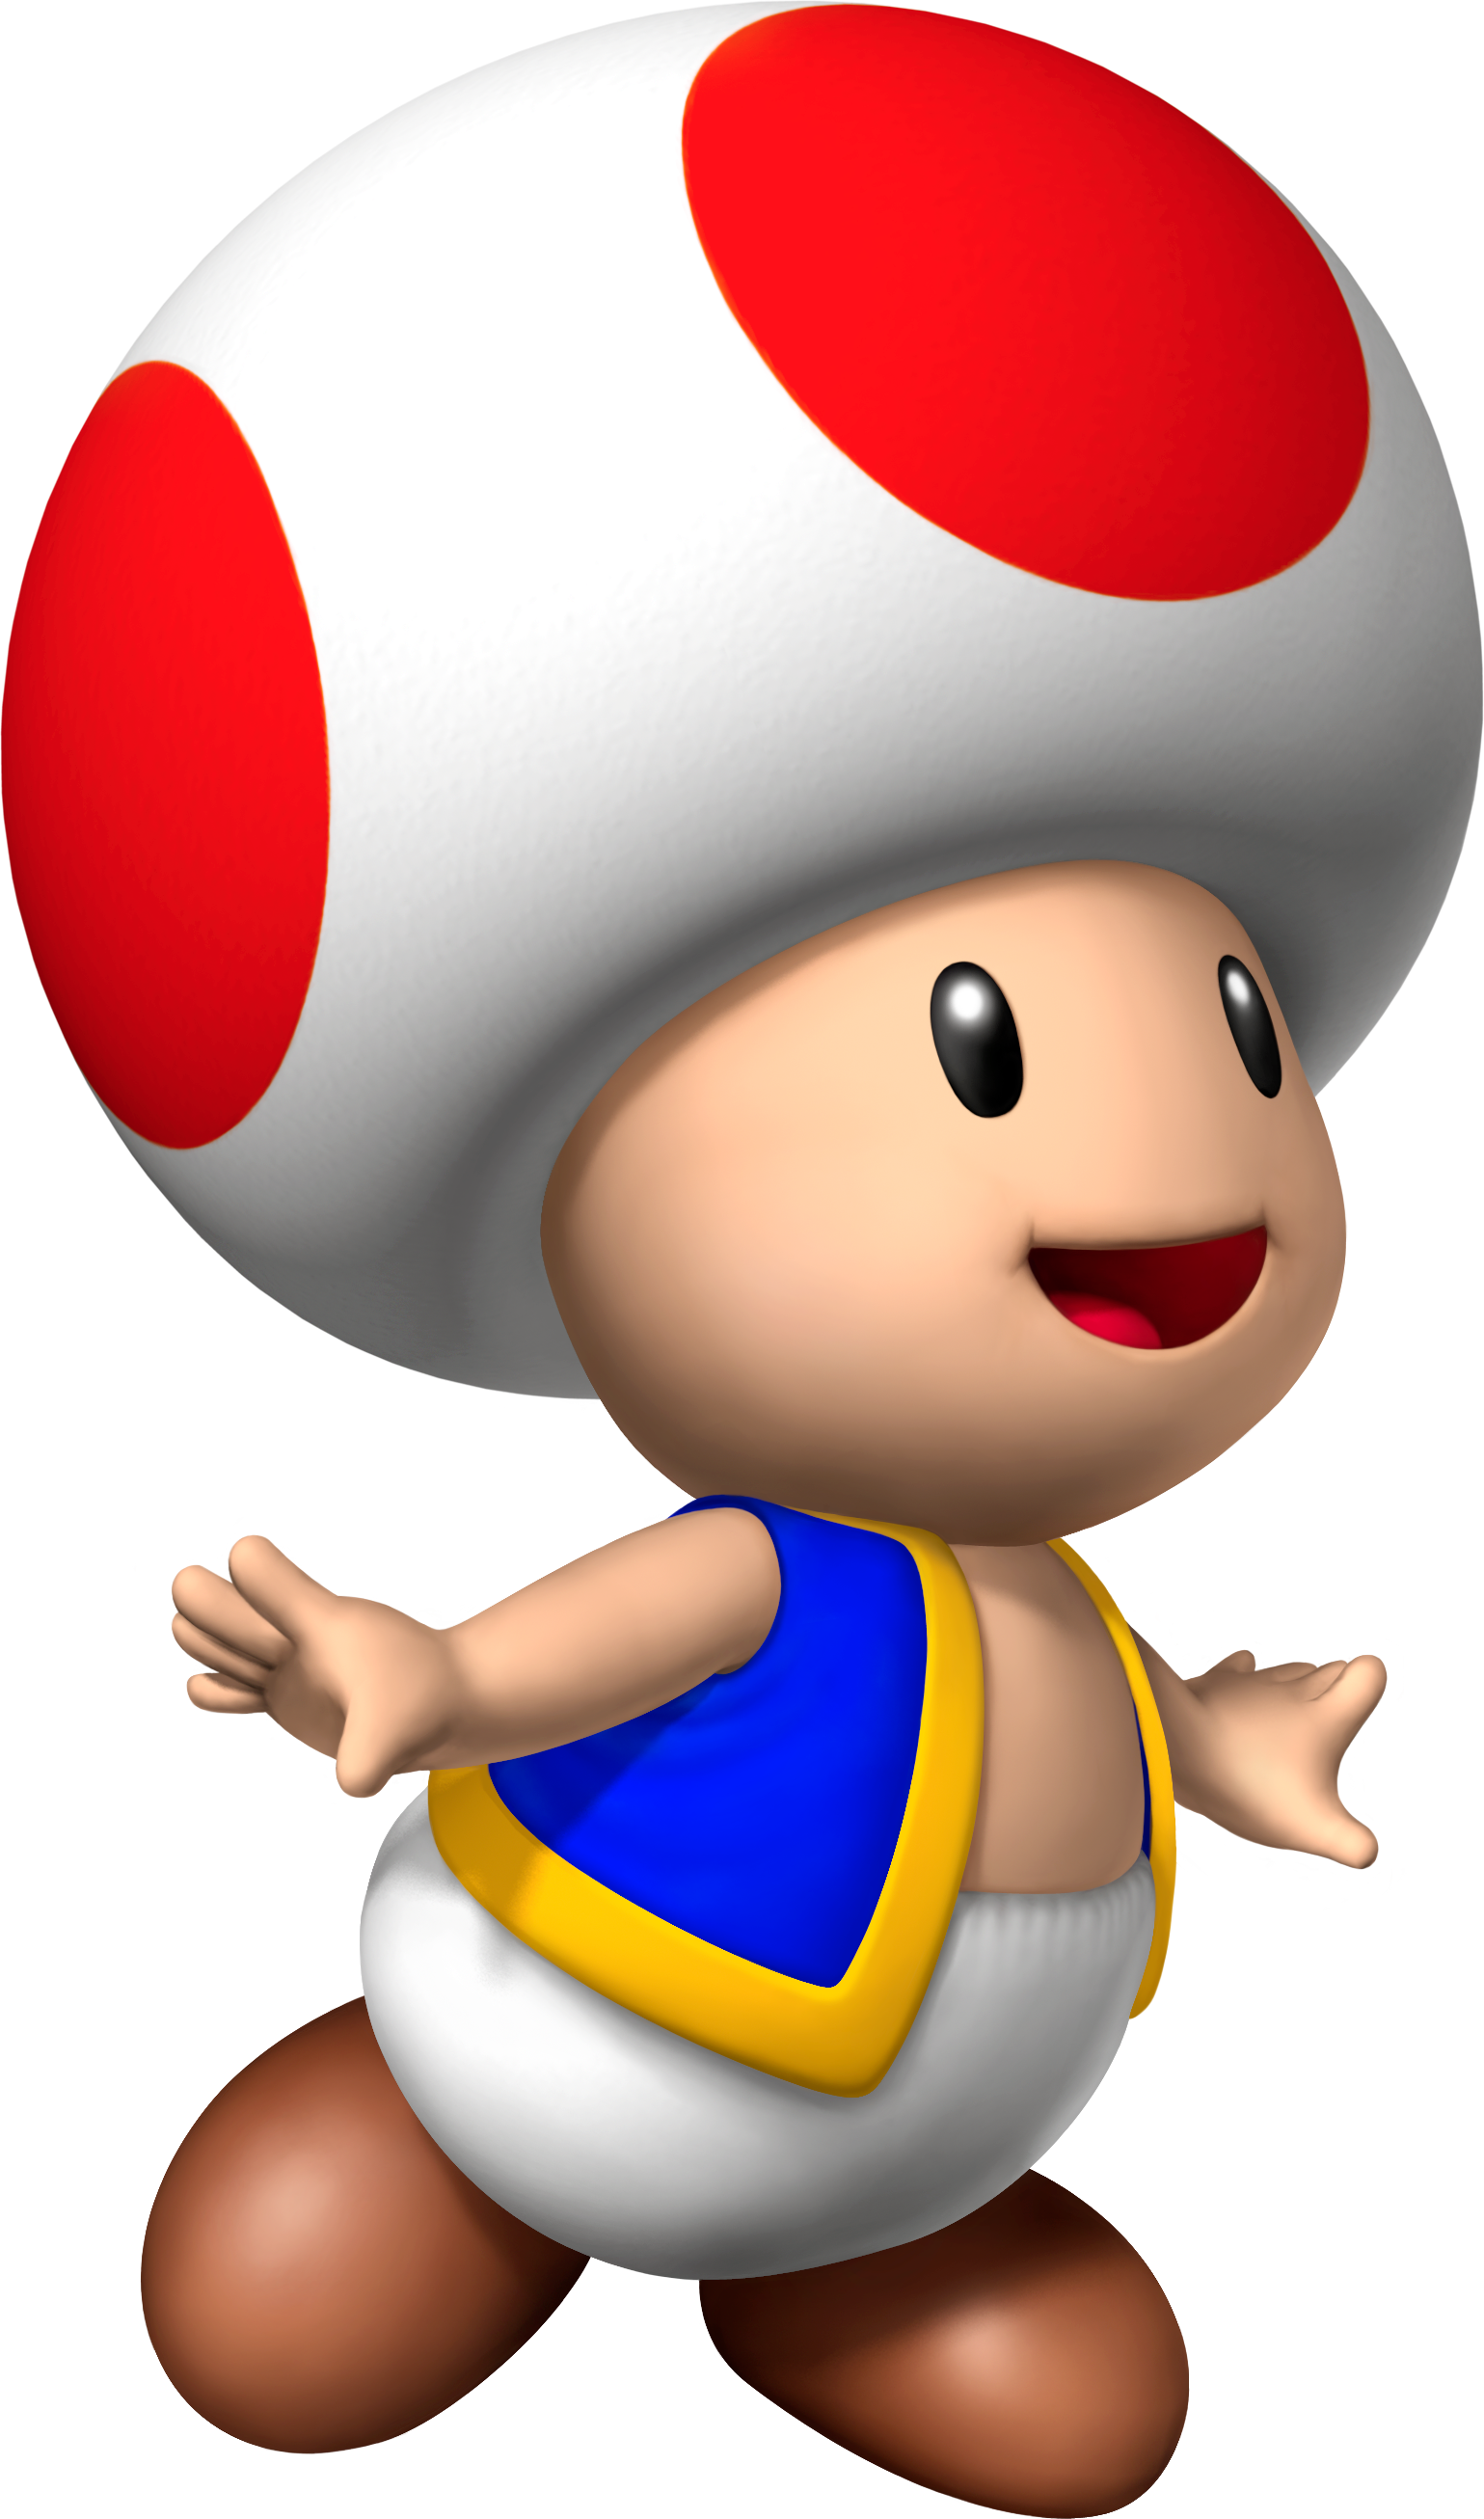 Toad transparent animated. Image toadmxs png mydiymario